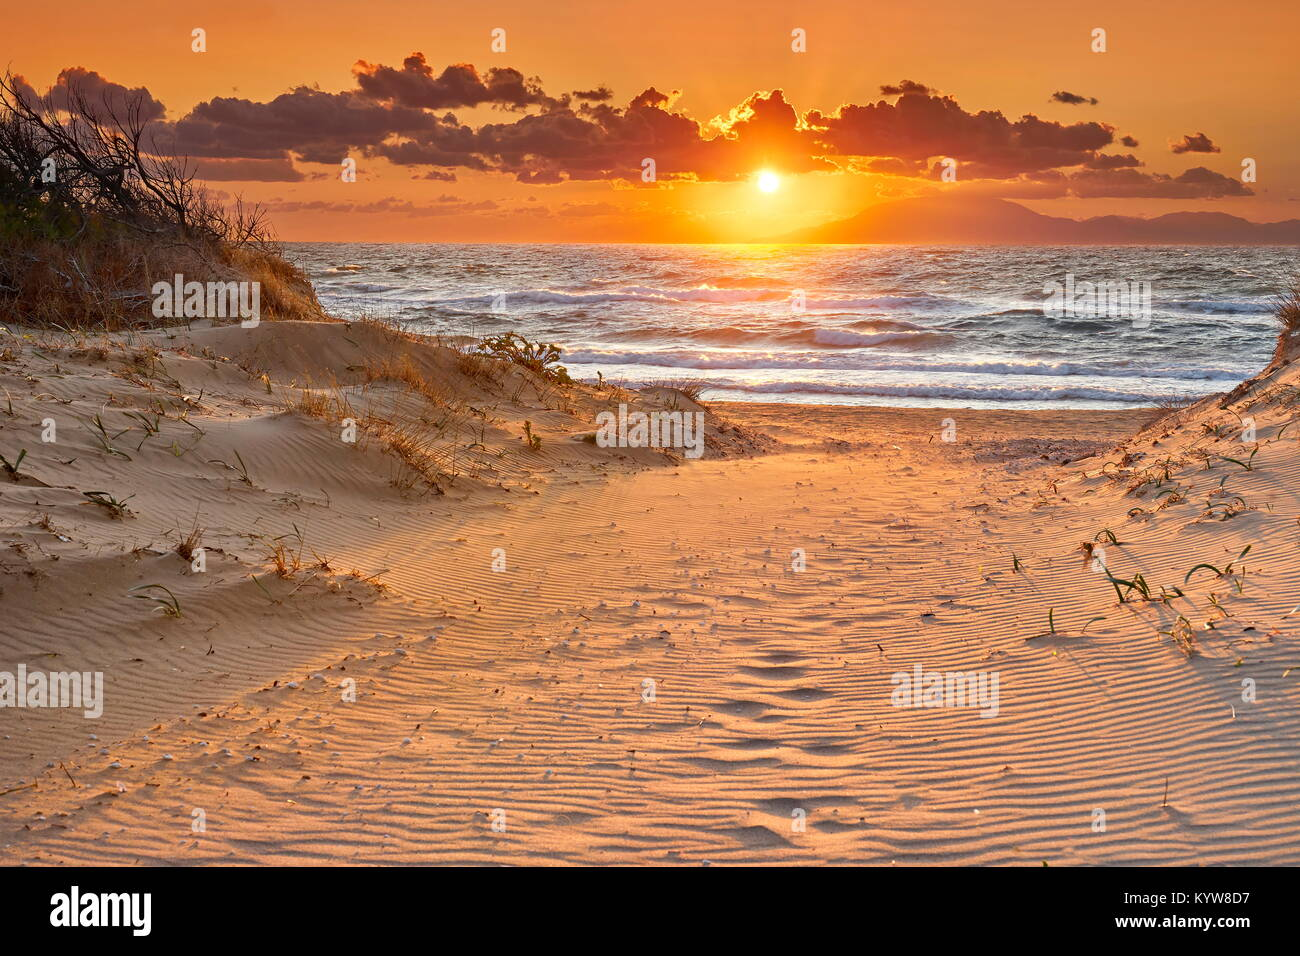 Peloponnese Beach at sunset time, Greece - Stock Image